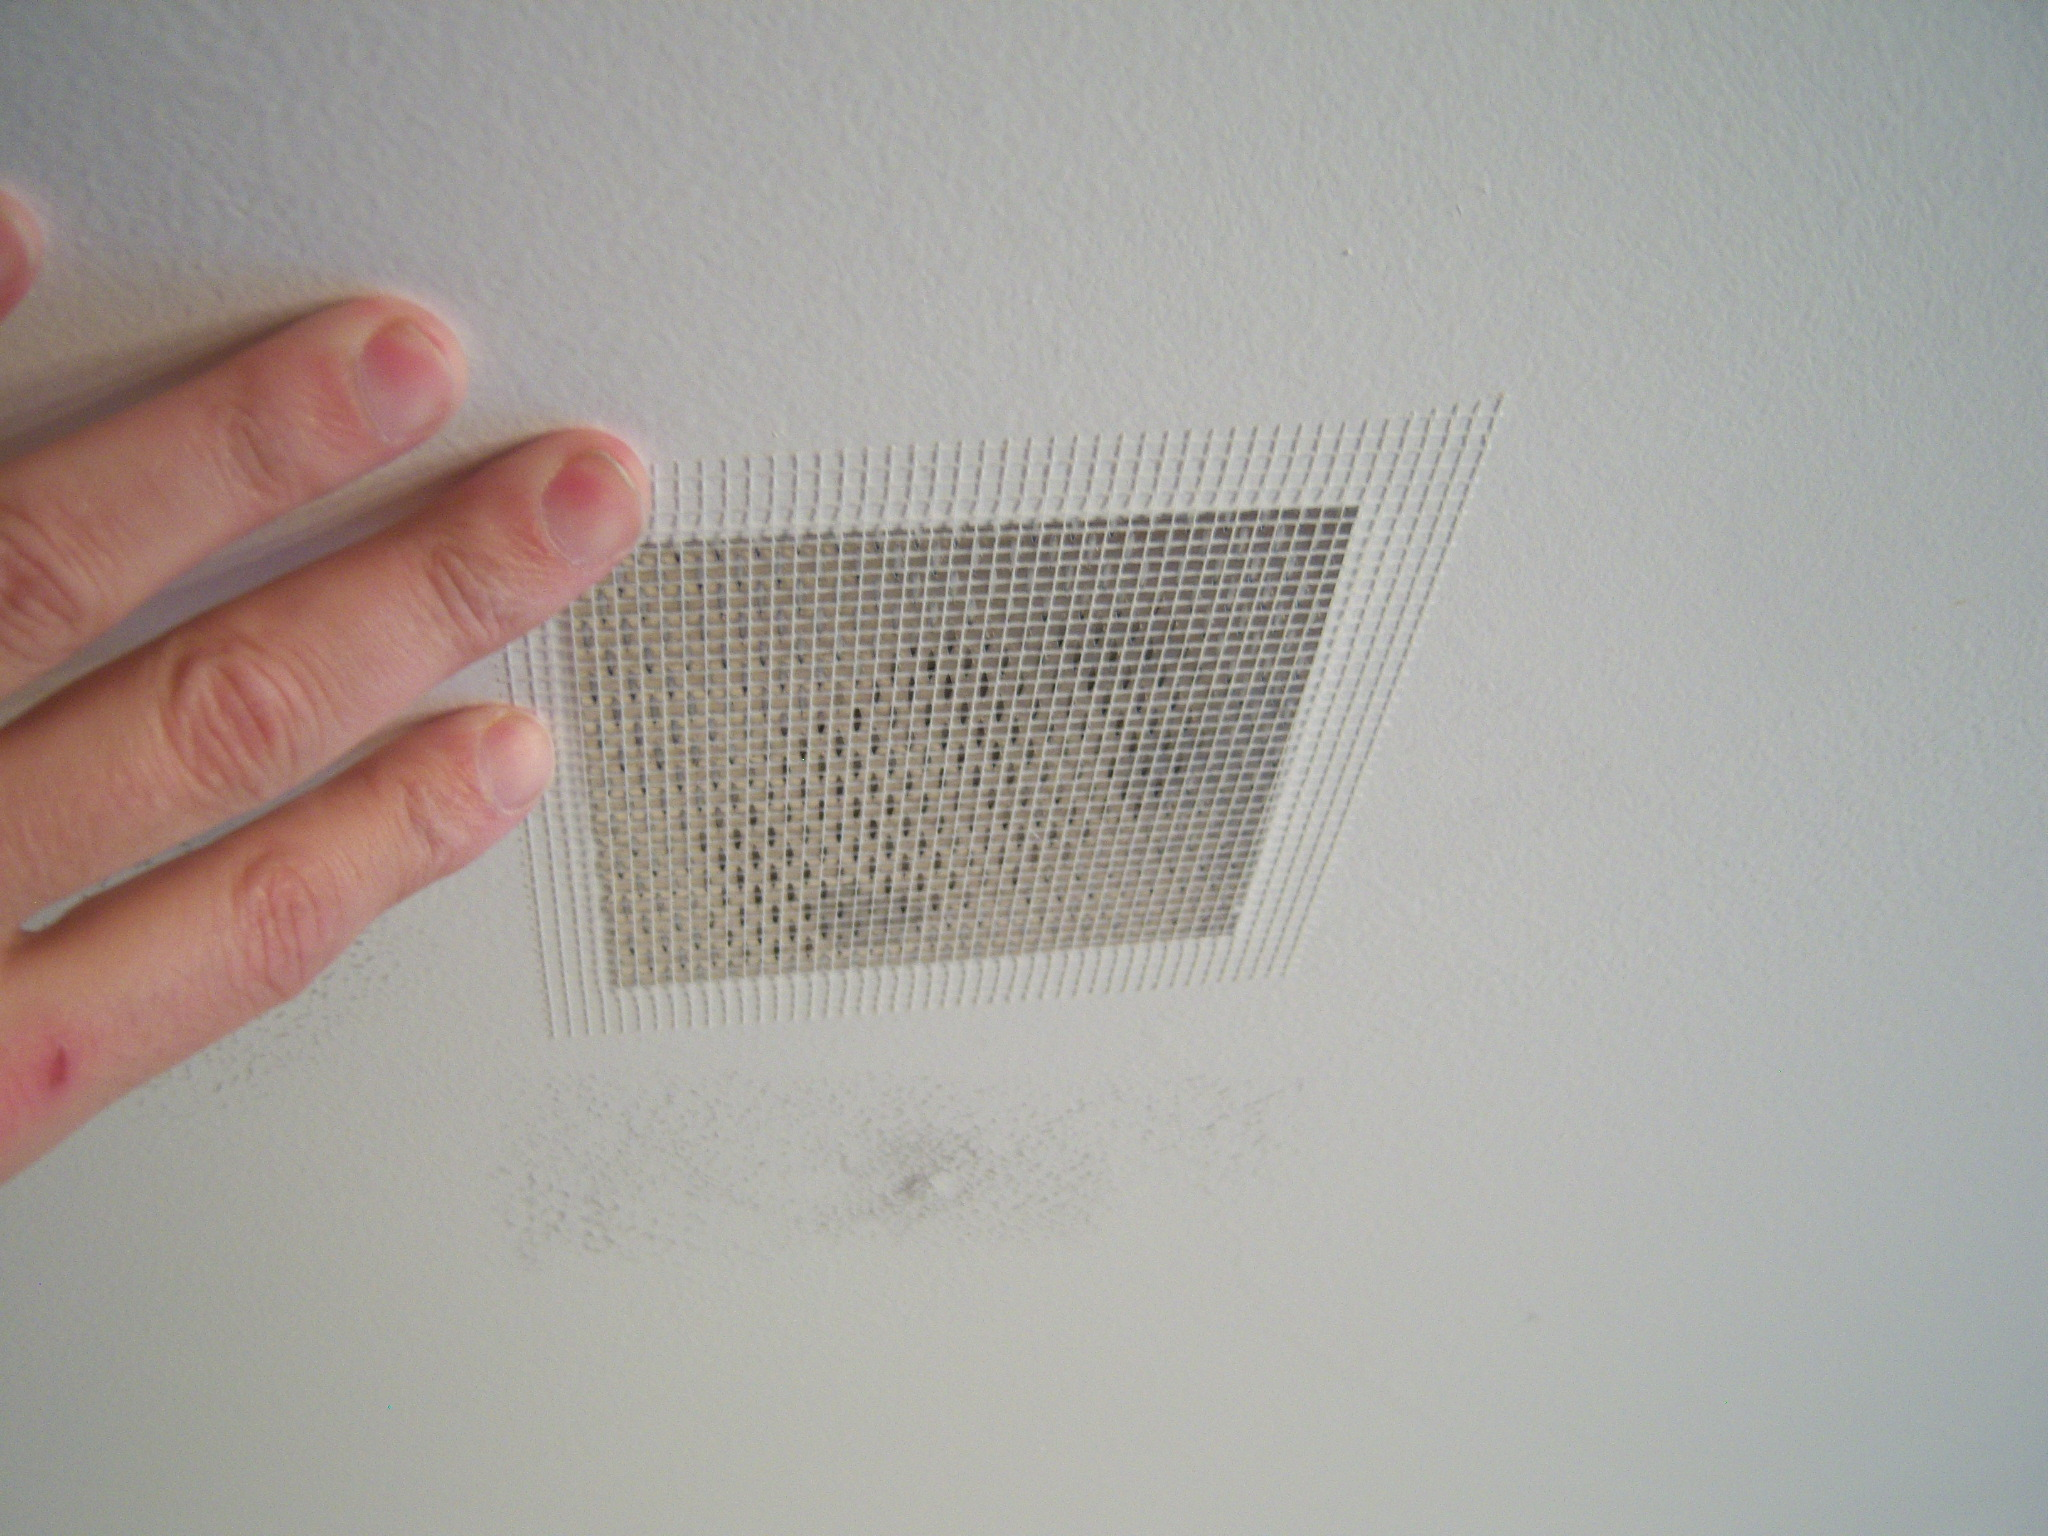 How to Patch a Ceiling Hole how-tos DIY